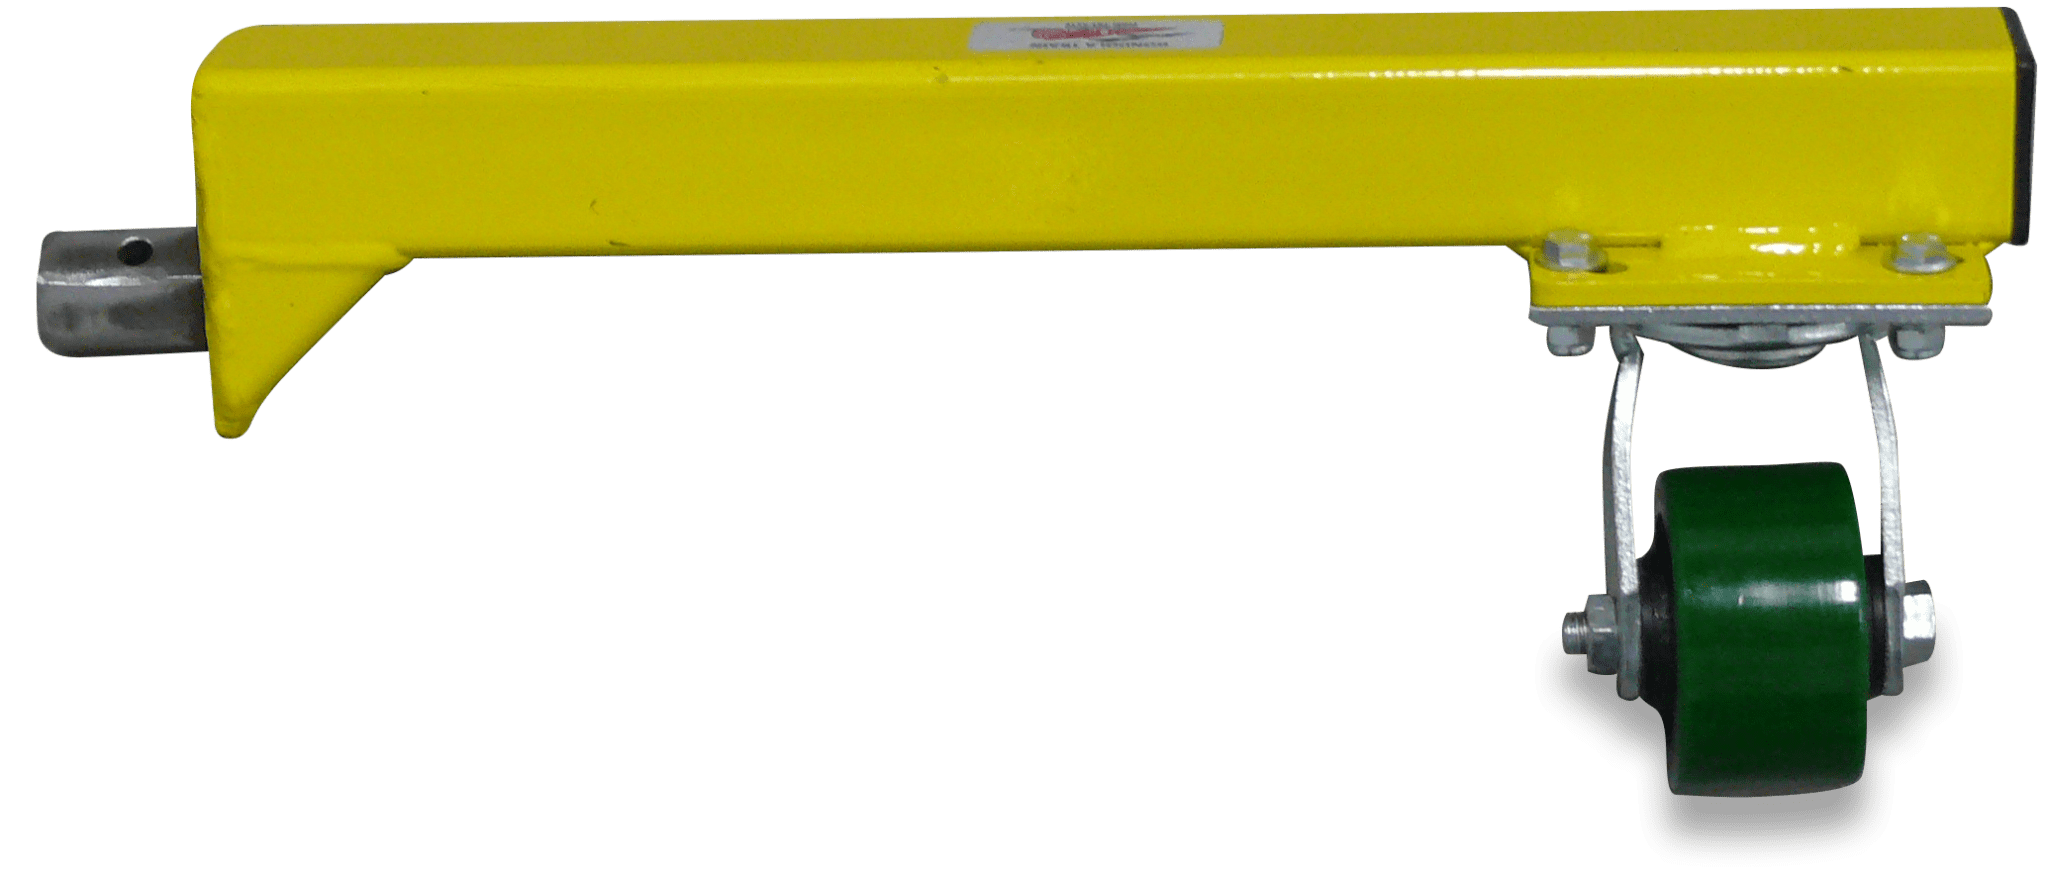 A cut-out of the yellow Gondola Train stabilizer leg.